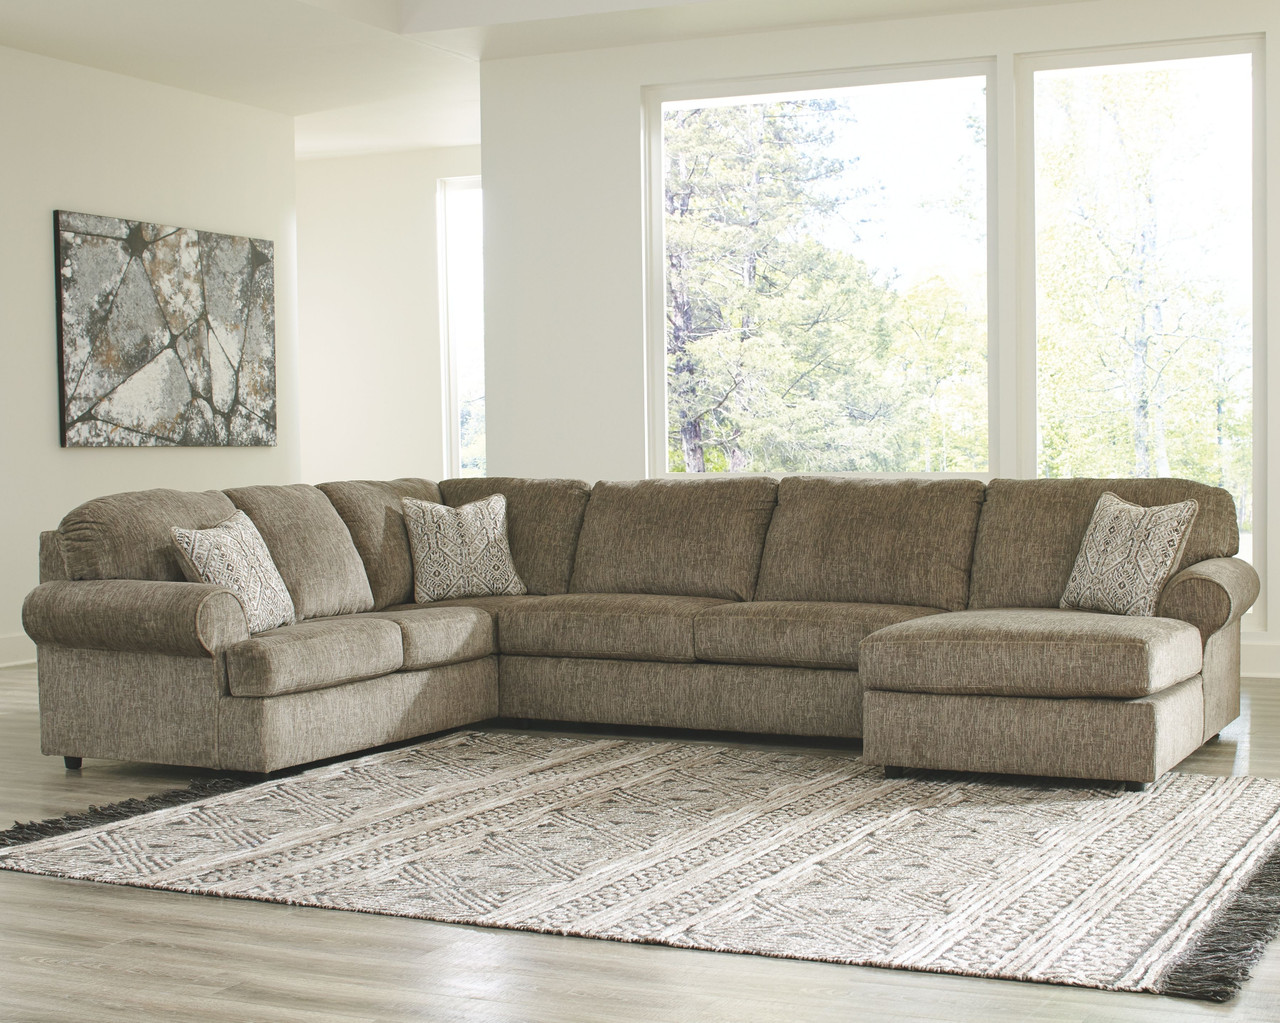 Ashley Hoylake Chocolate 3 Pc Sectional With Chaise On Sale At Lee Furniture Of Fayetteville Nc